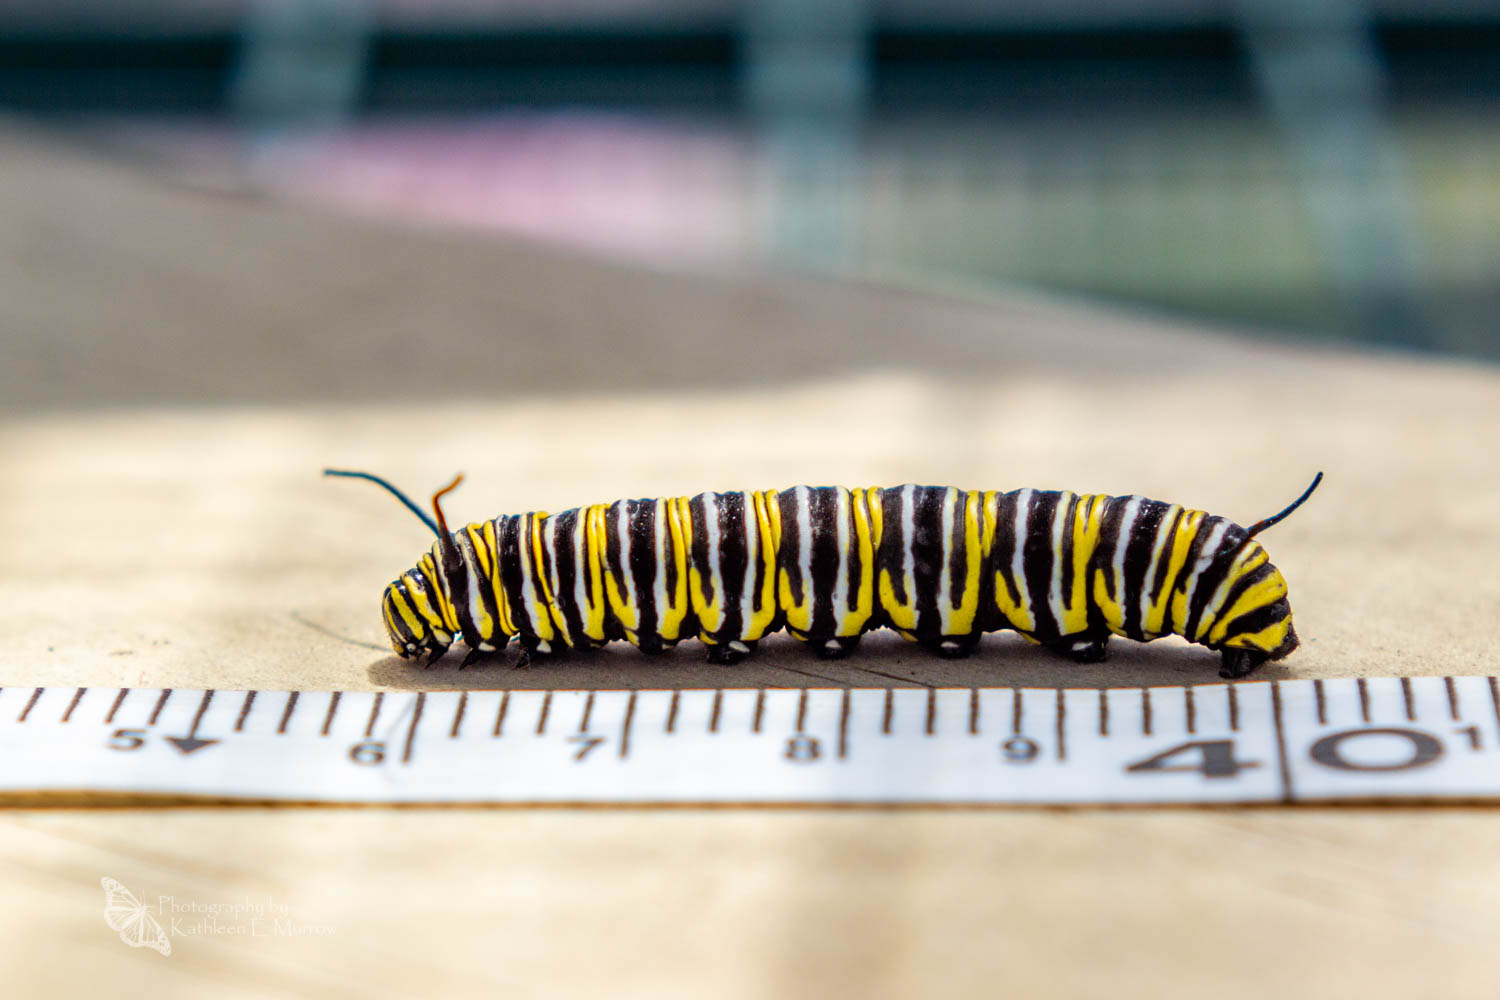 A fifth instar caterpillar of the monarch butterfly alongside a white measuring tape